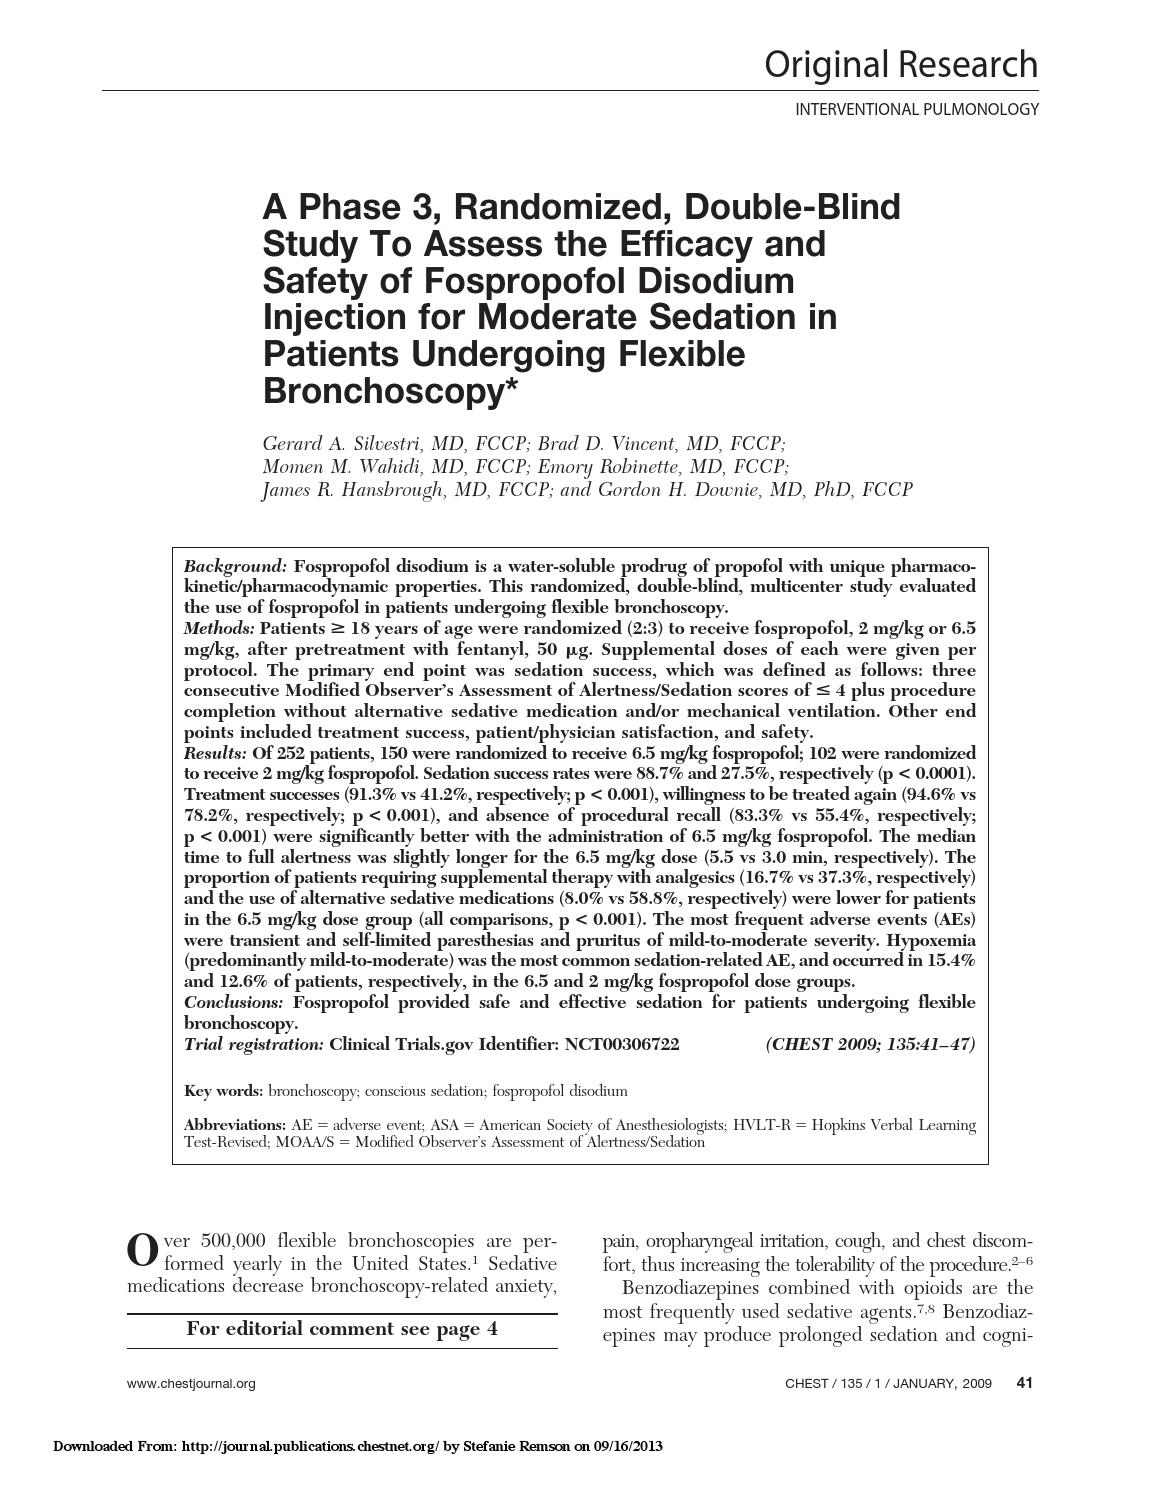 A phase 3, randomized, double blind study to assess the ...